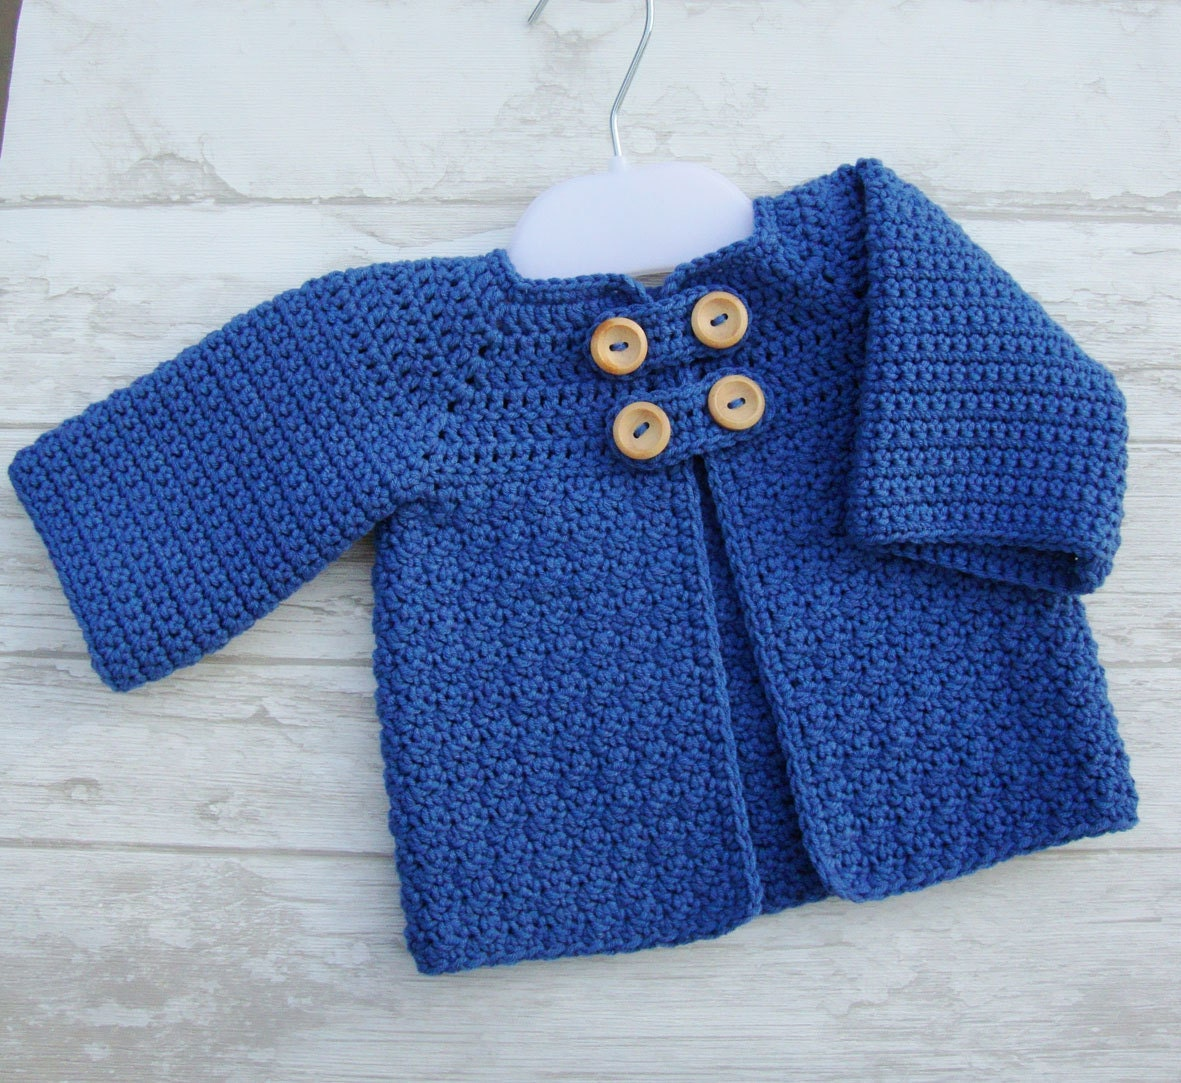 Crochet baby sweater - baby jacket - cotton cardigan for baby size 0/3 months ocean blue